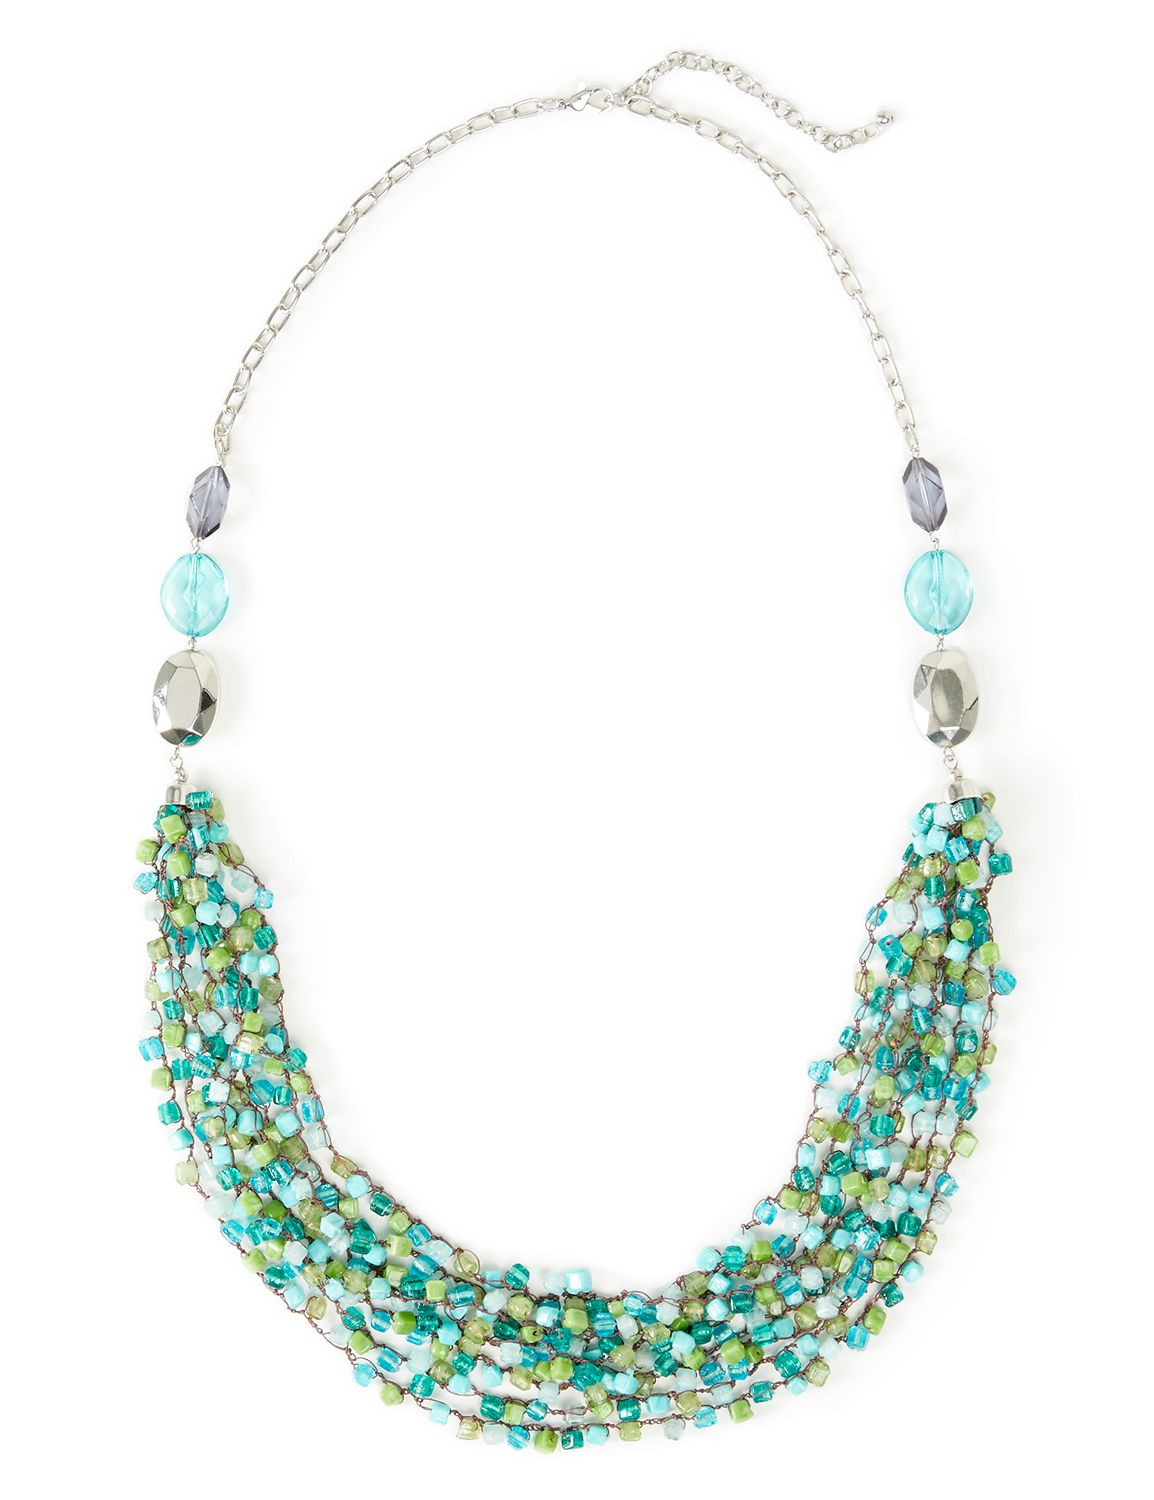 Coastal Tidefall Necklace CB Long beaded cubes bib NK KT0717N MP-300099214